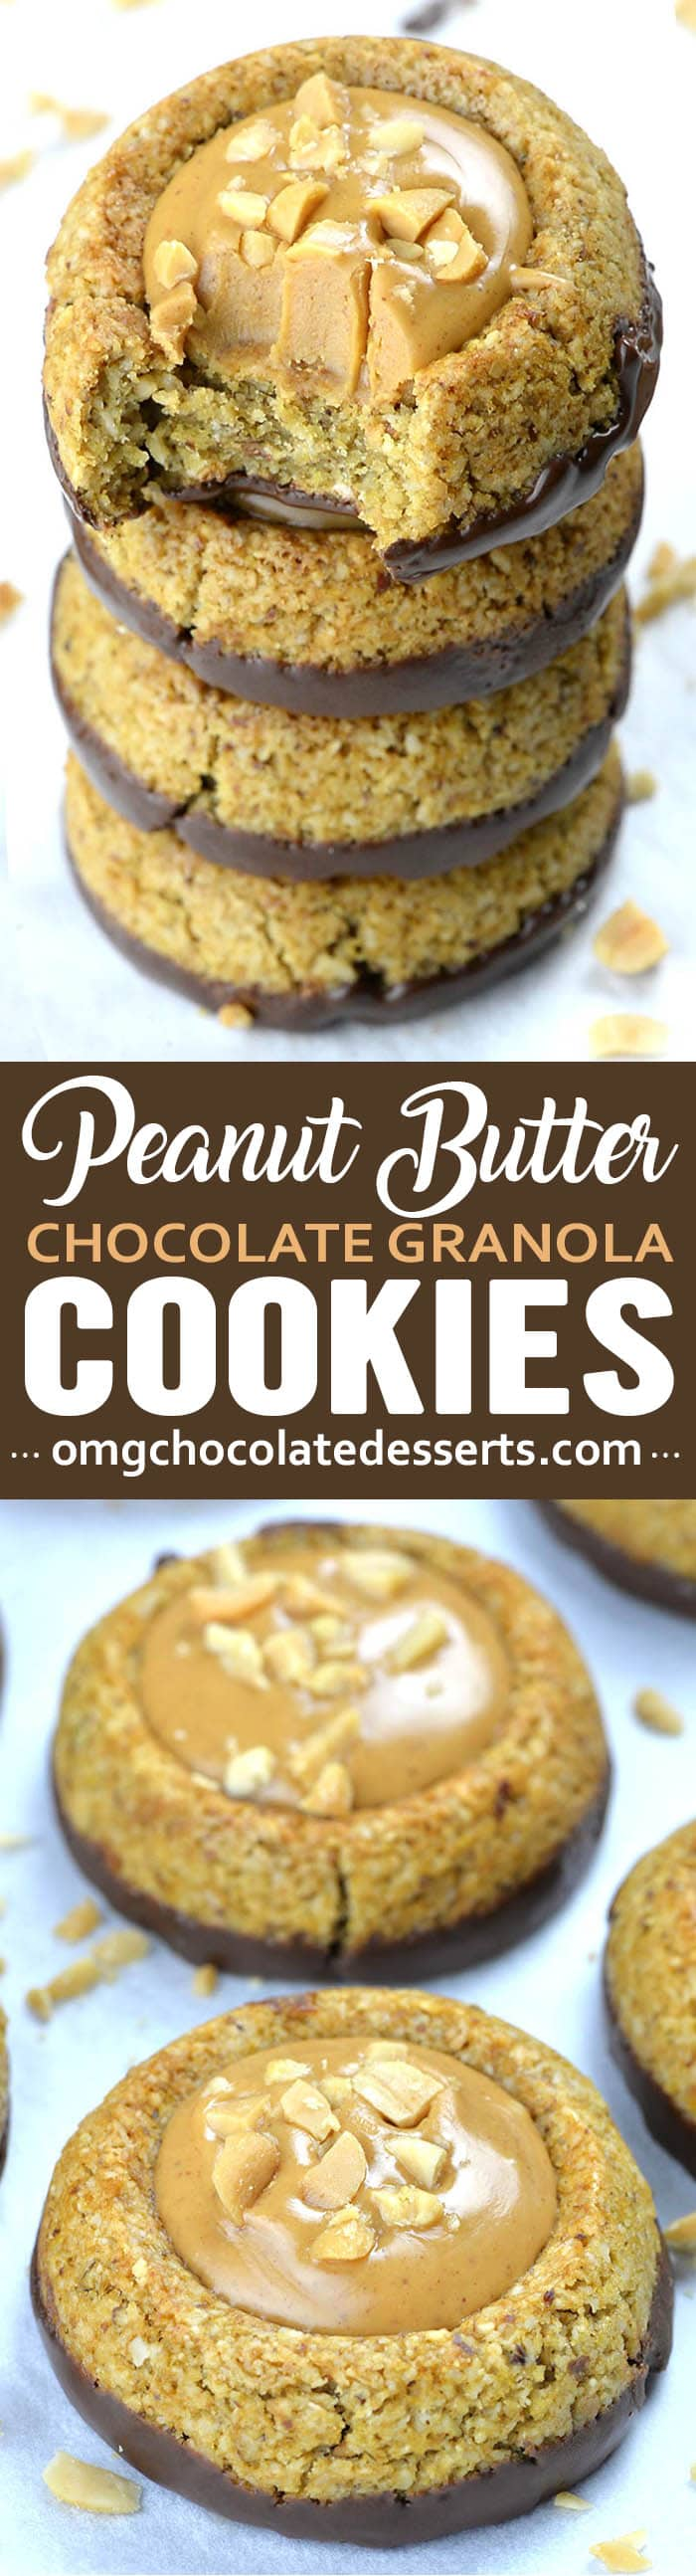 Granola Cookies with dark chocolate and peanut butter are healthy option for anytime of the day- breakfast, snack, but very satisfying dessert, too!